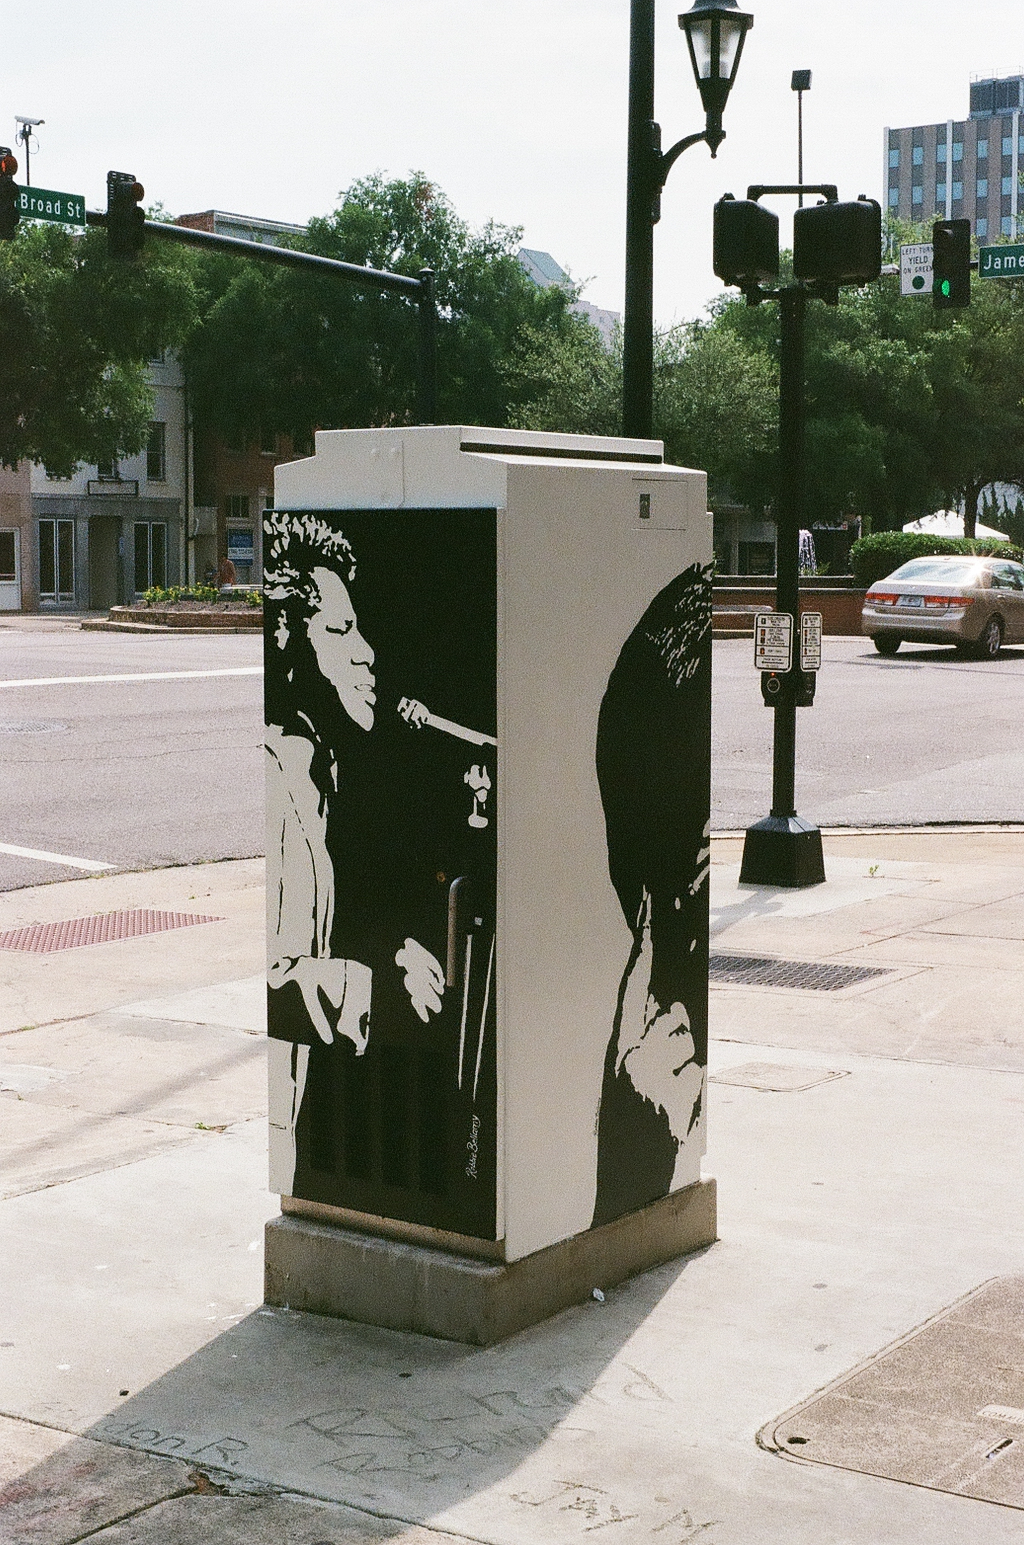 James Brown Art the Box in Downtown Augusta Georgia